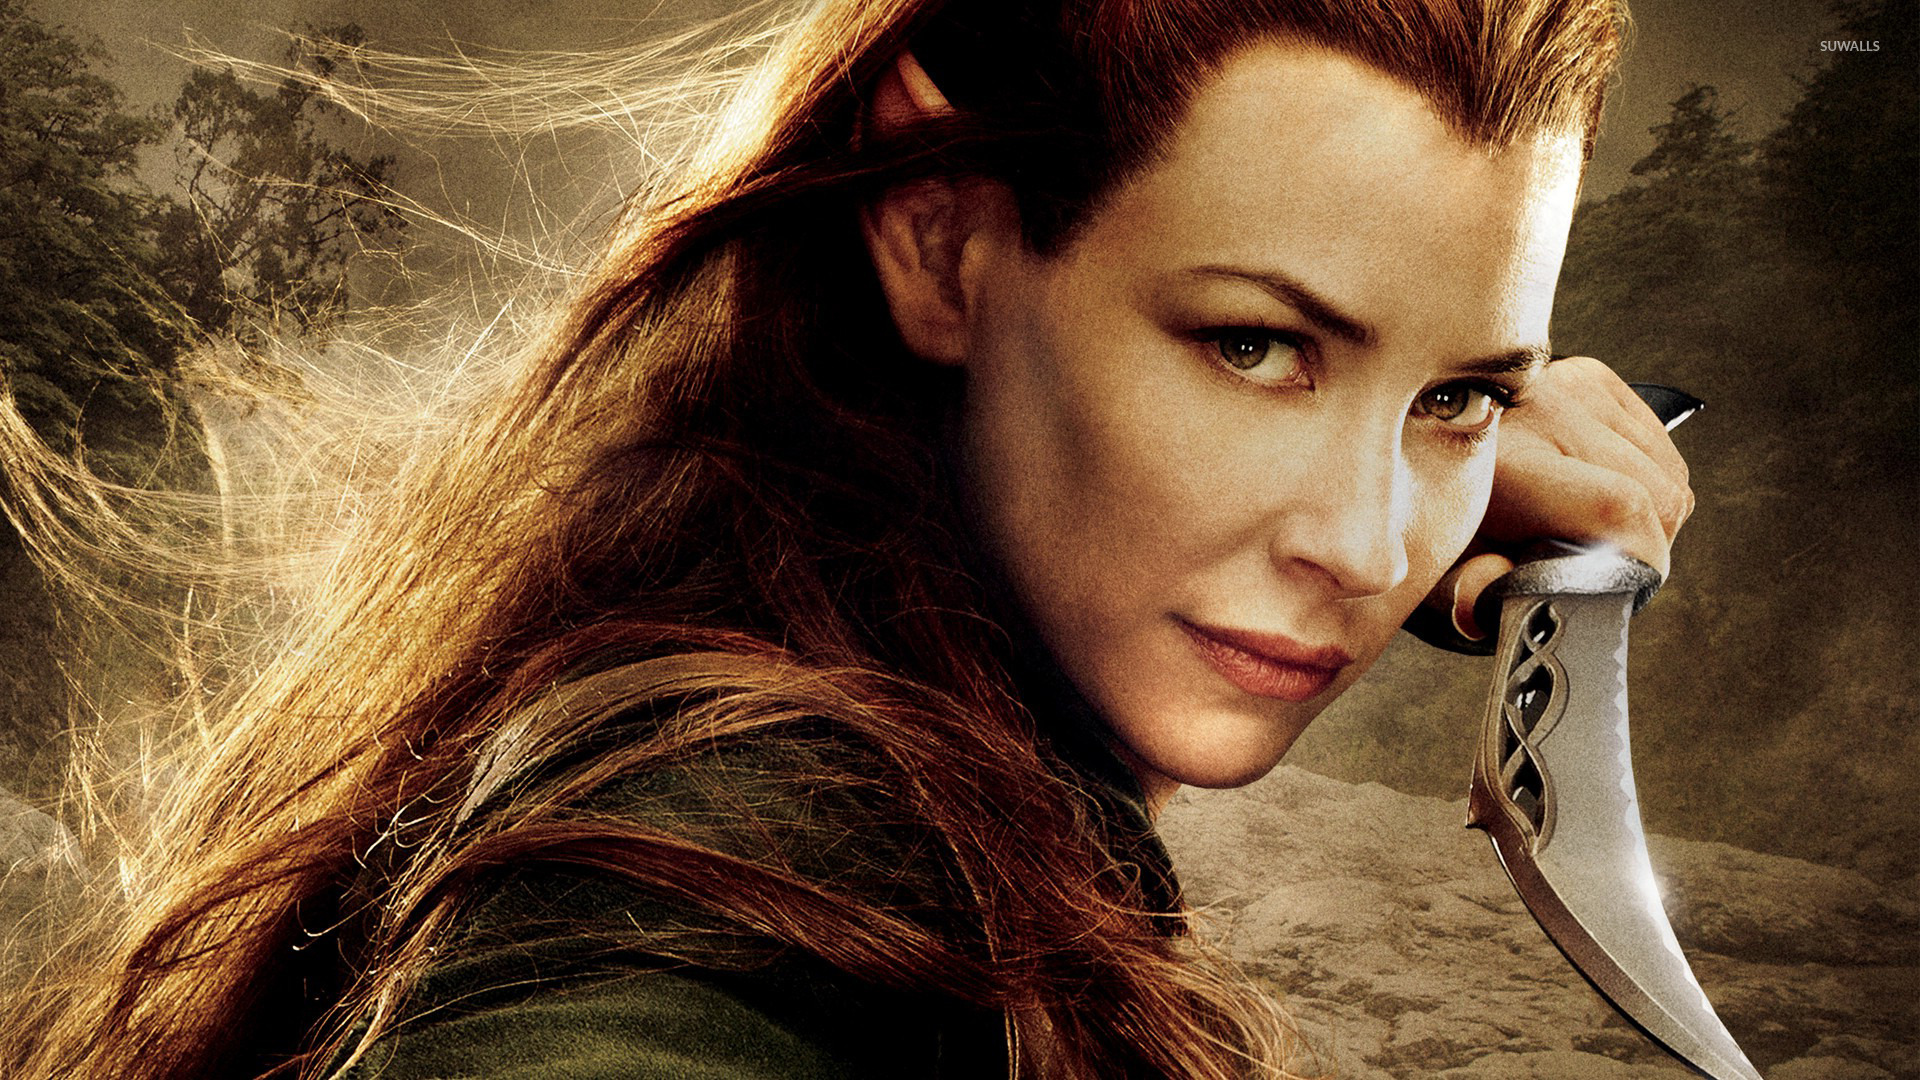 Tauriel   The Hobbit The Desolation of Smaug wallpaper   Movie 1920x1080